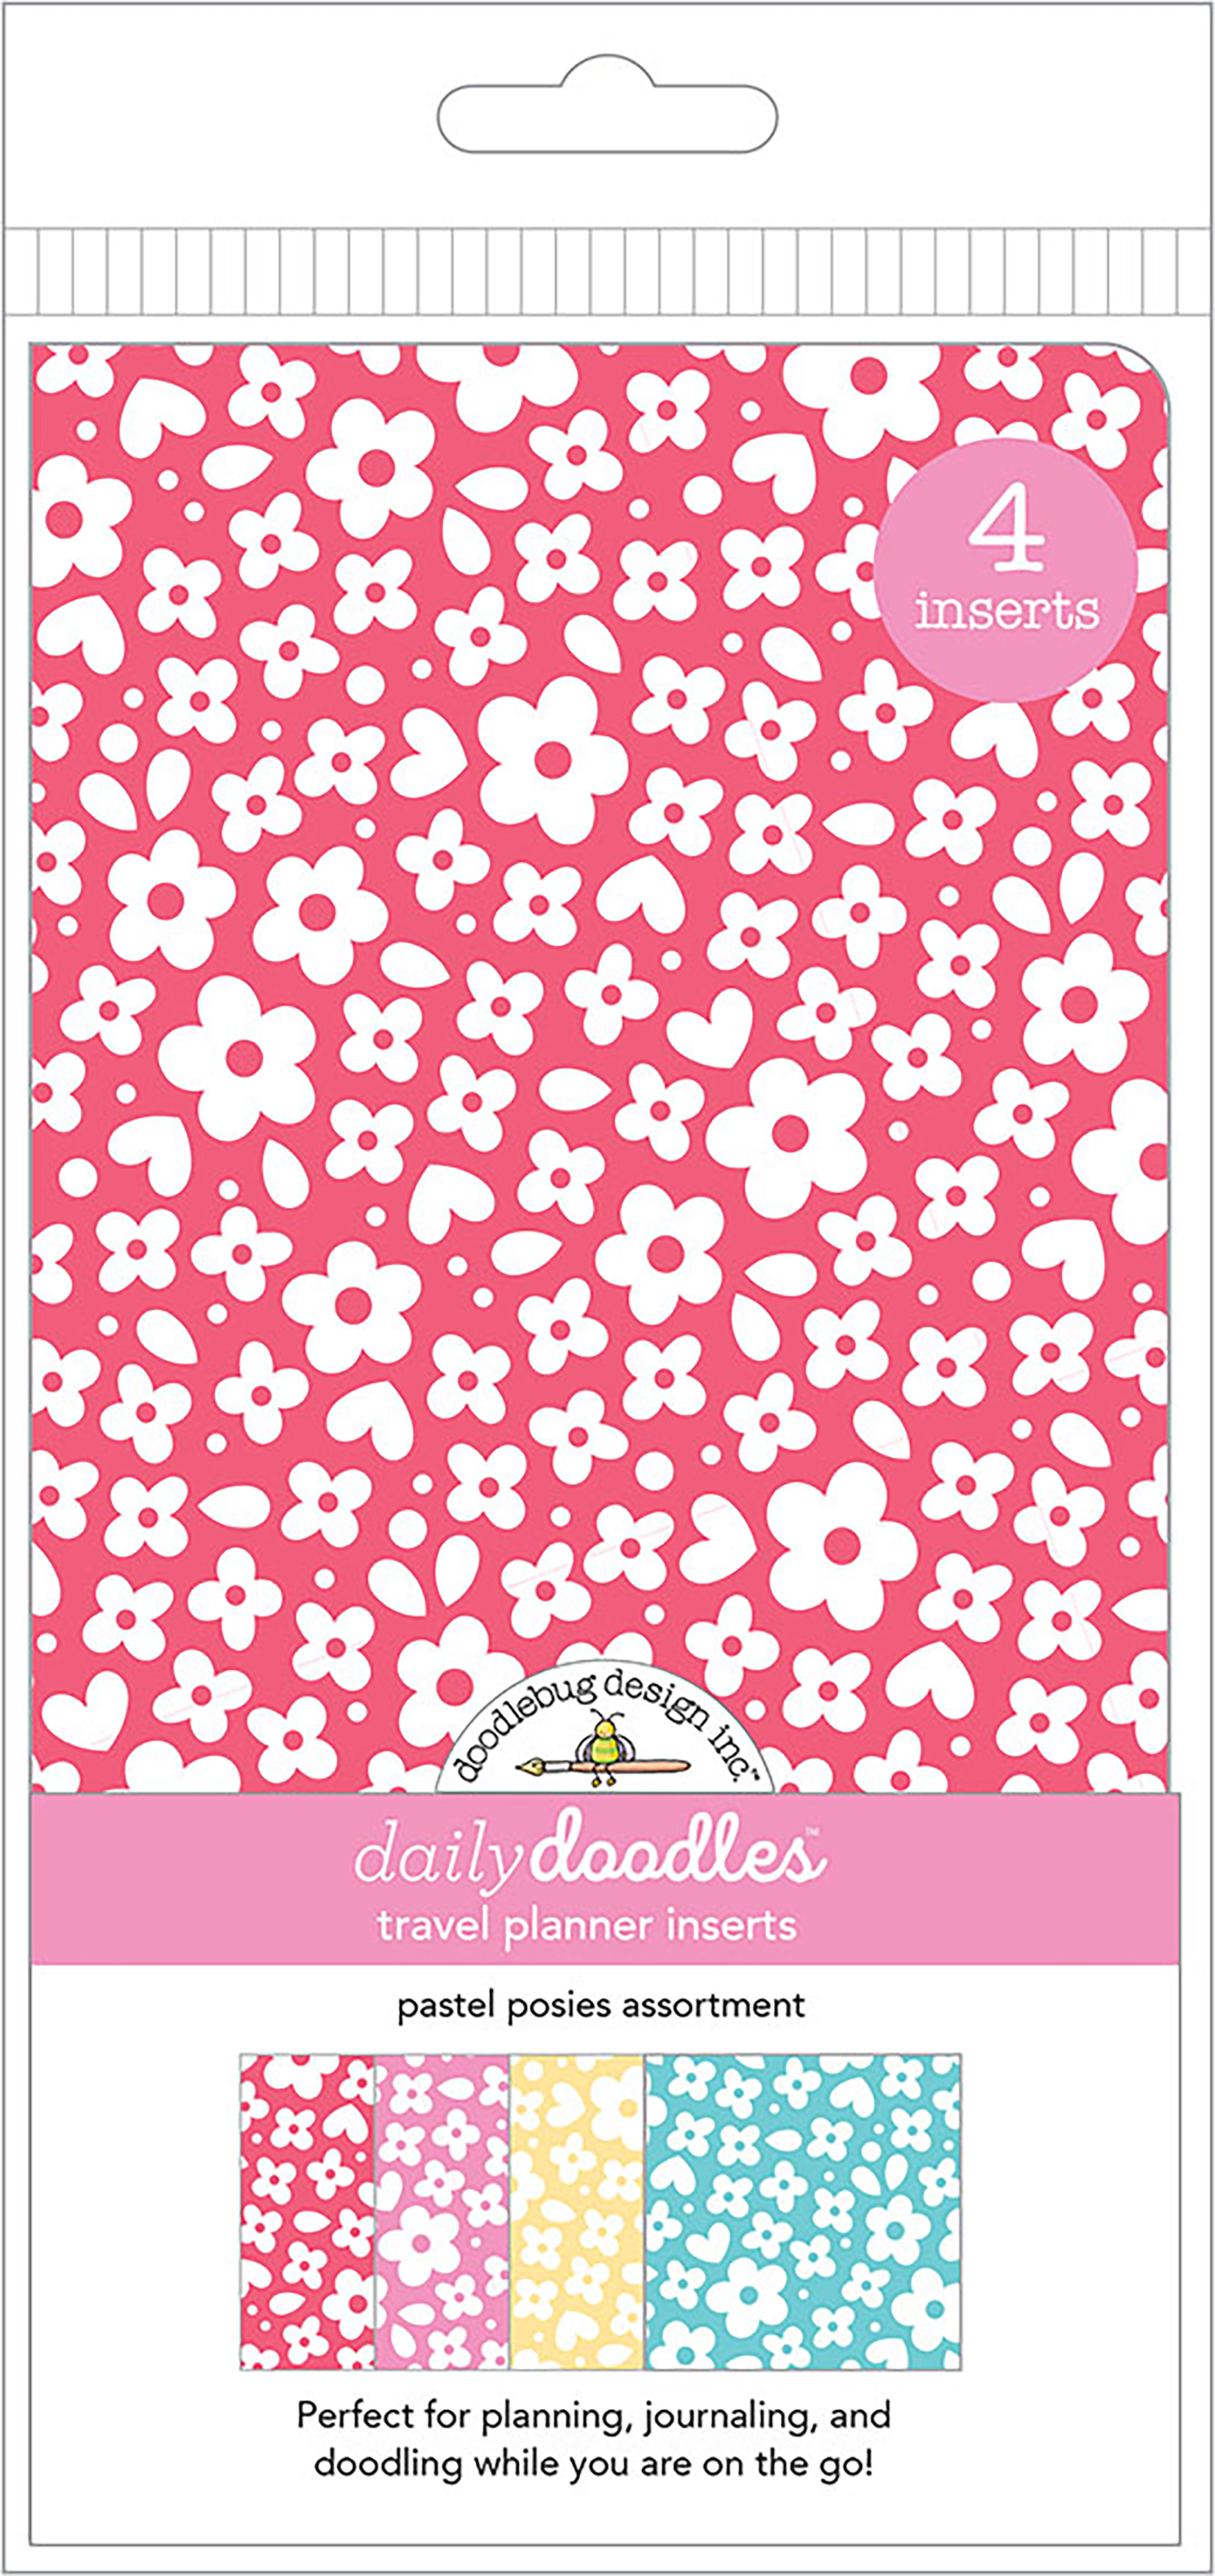 Doodlebug Daily Doodles - Pastel Posies Travel Planner Inserts, 4/Pack